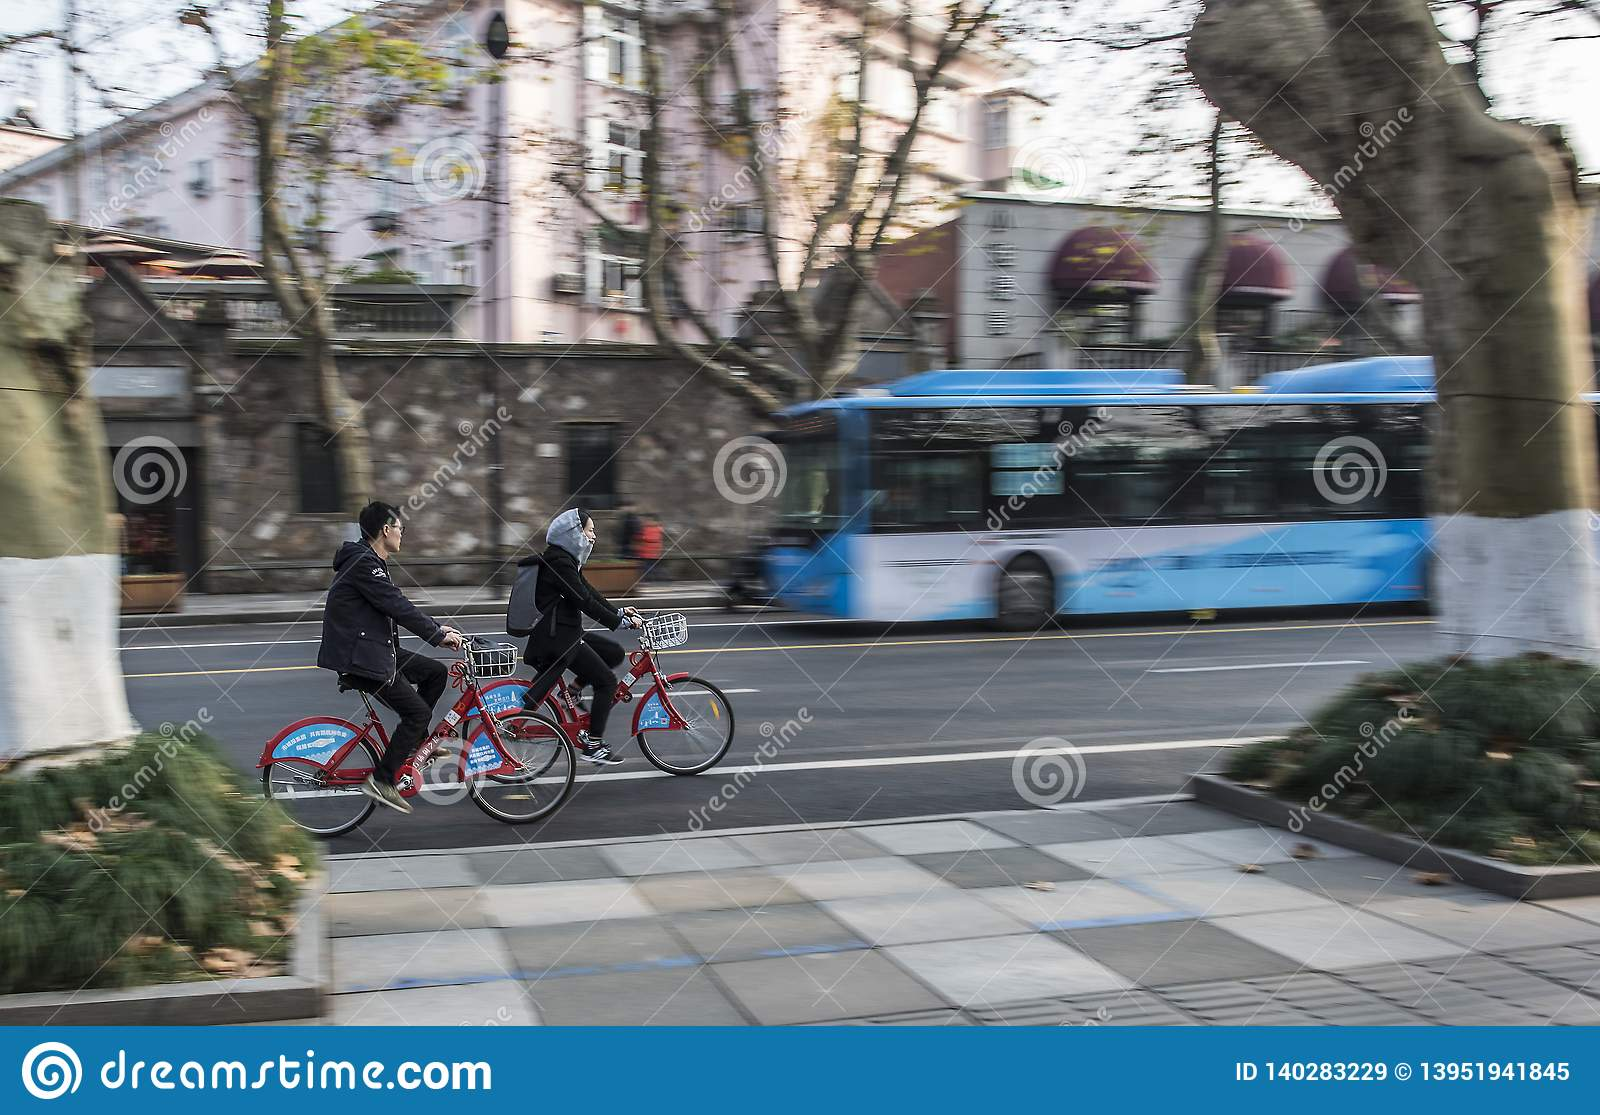 Chasing young men and women riding public bicycles, clear male and female subjects, blurred street background